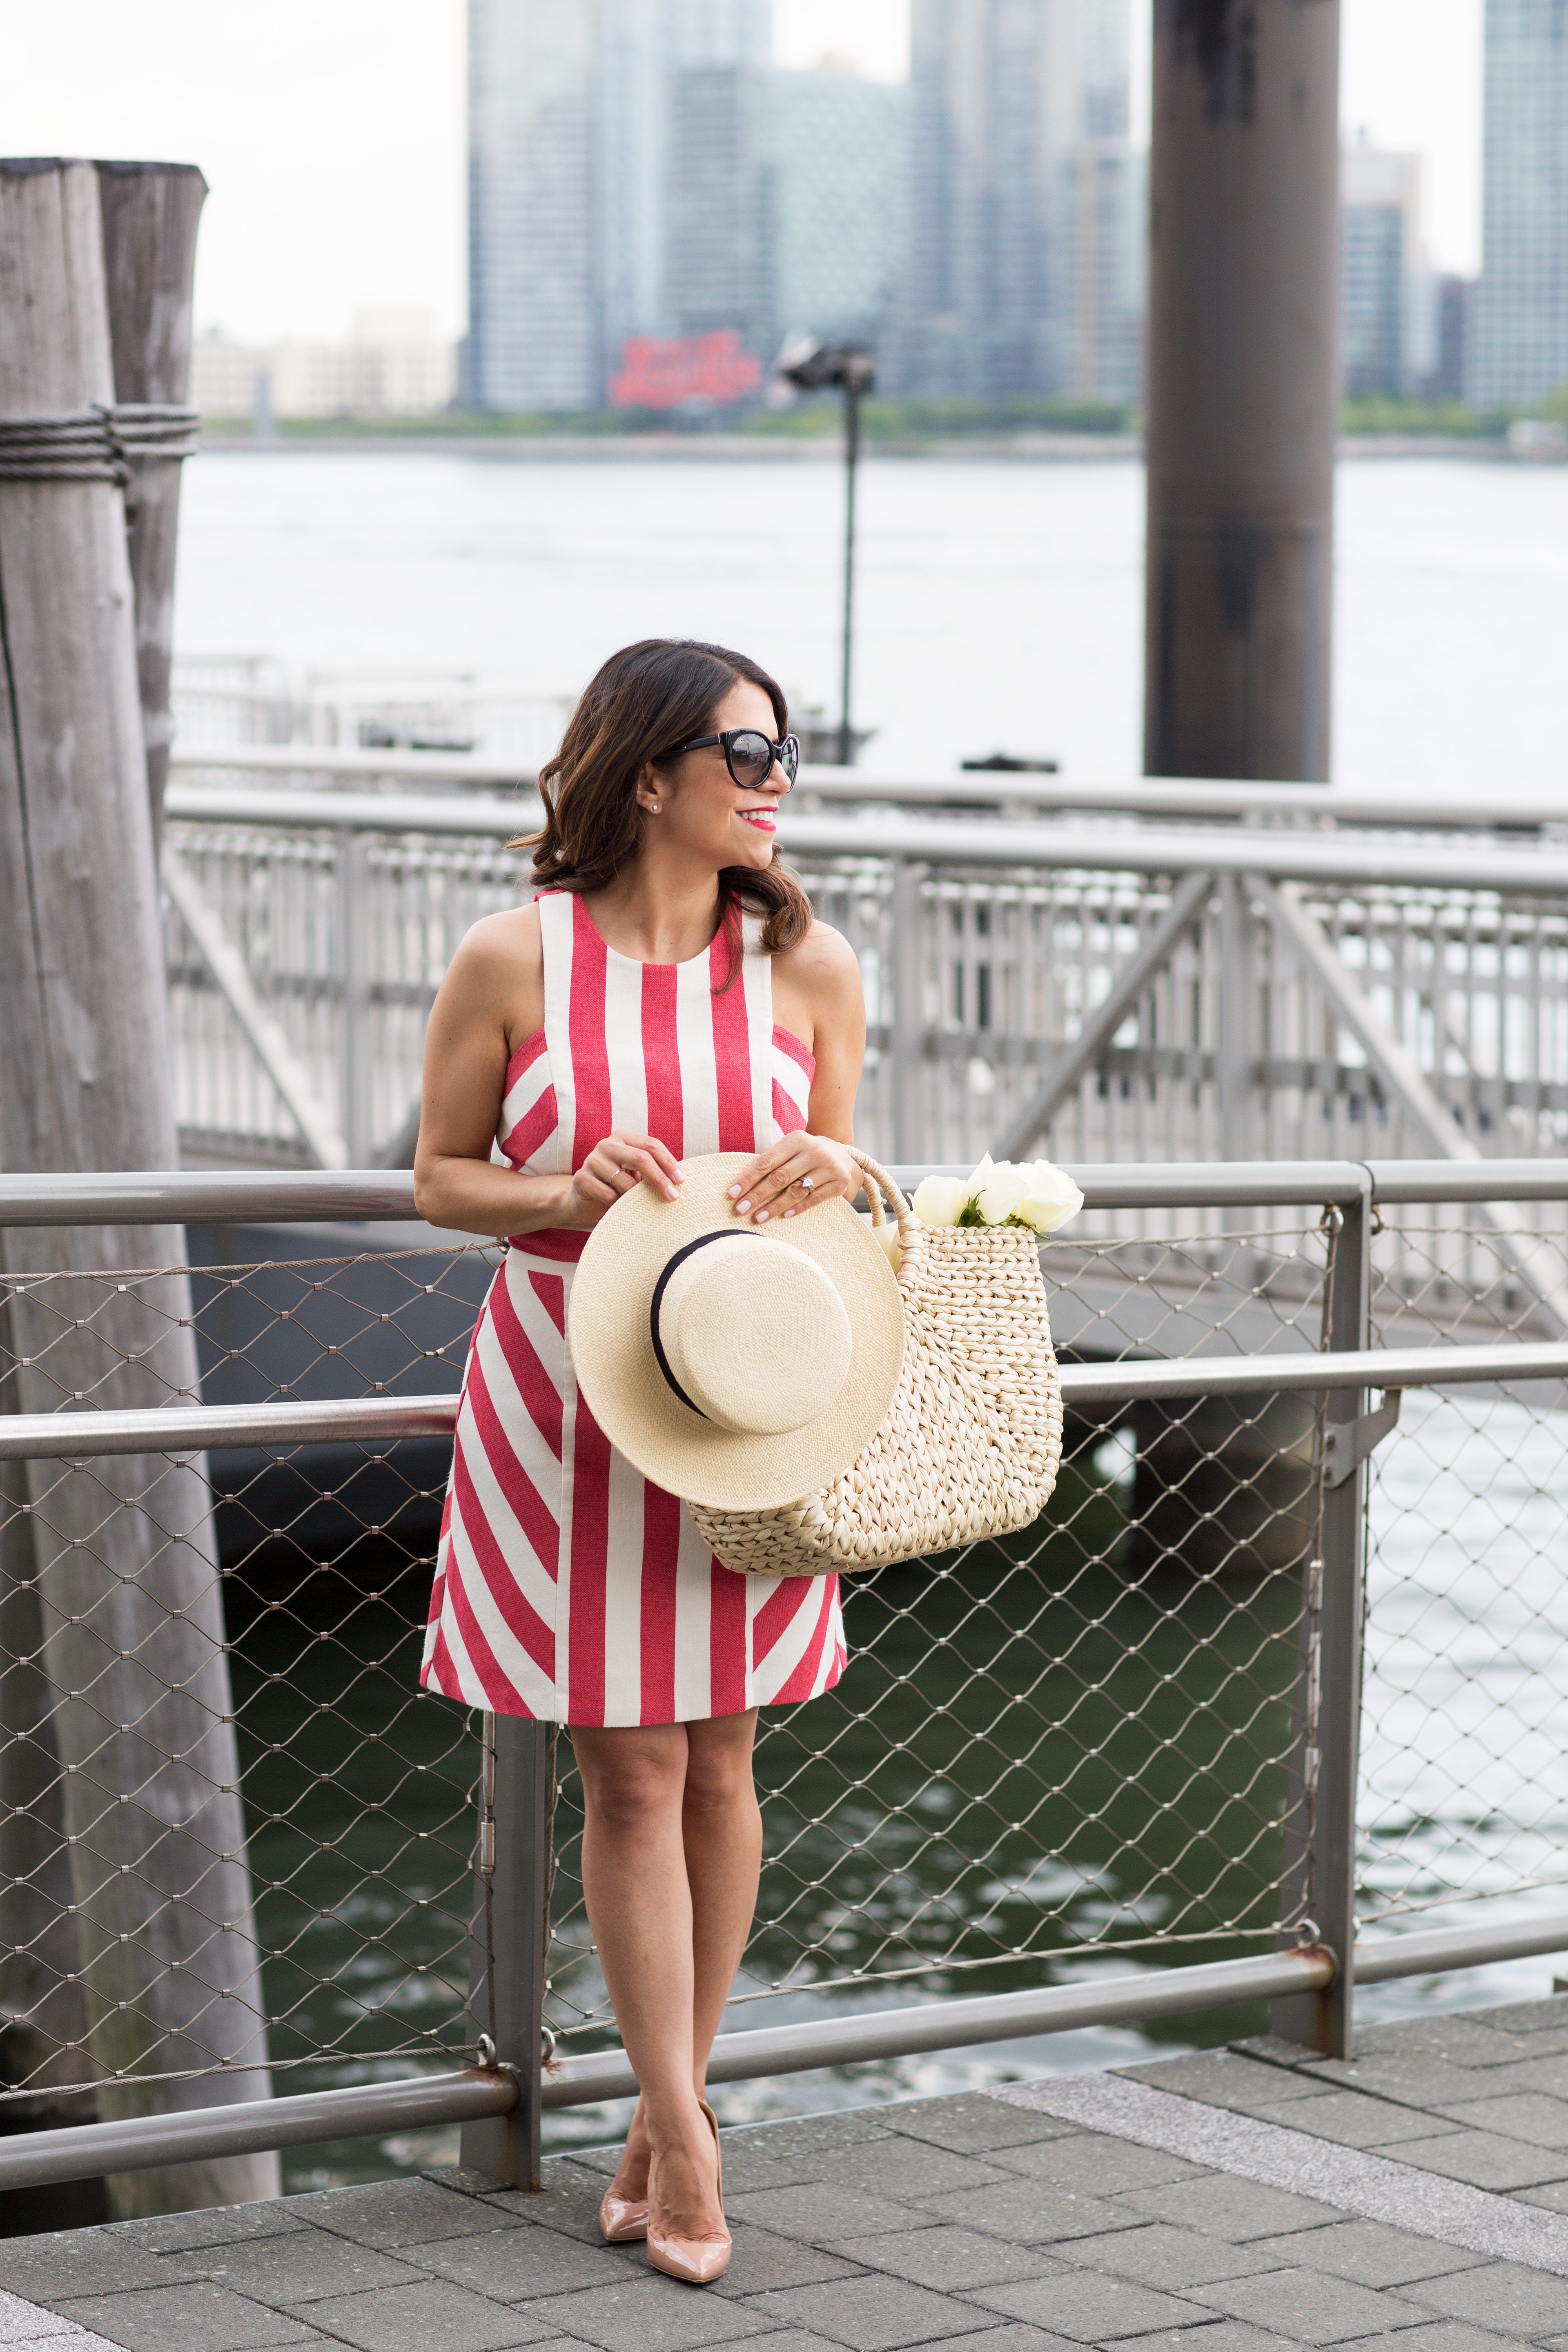 Rent the Runway red and white Mily dress with woven tote Christian Louboutin Pigalle with hat for the summer on Corporate Catwalk